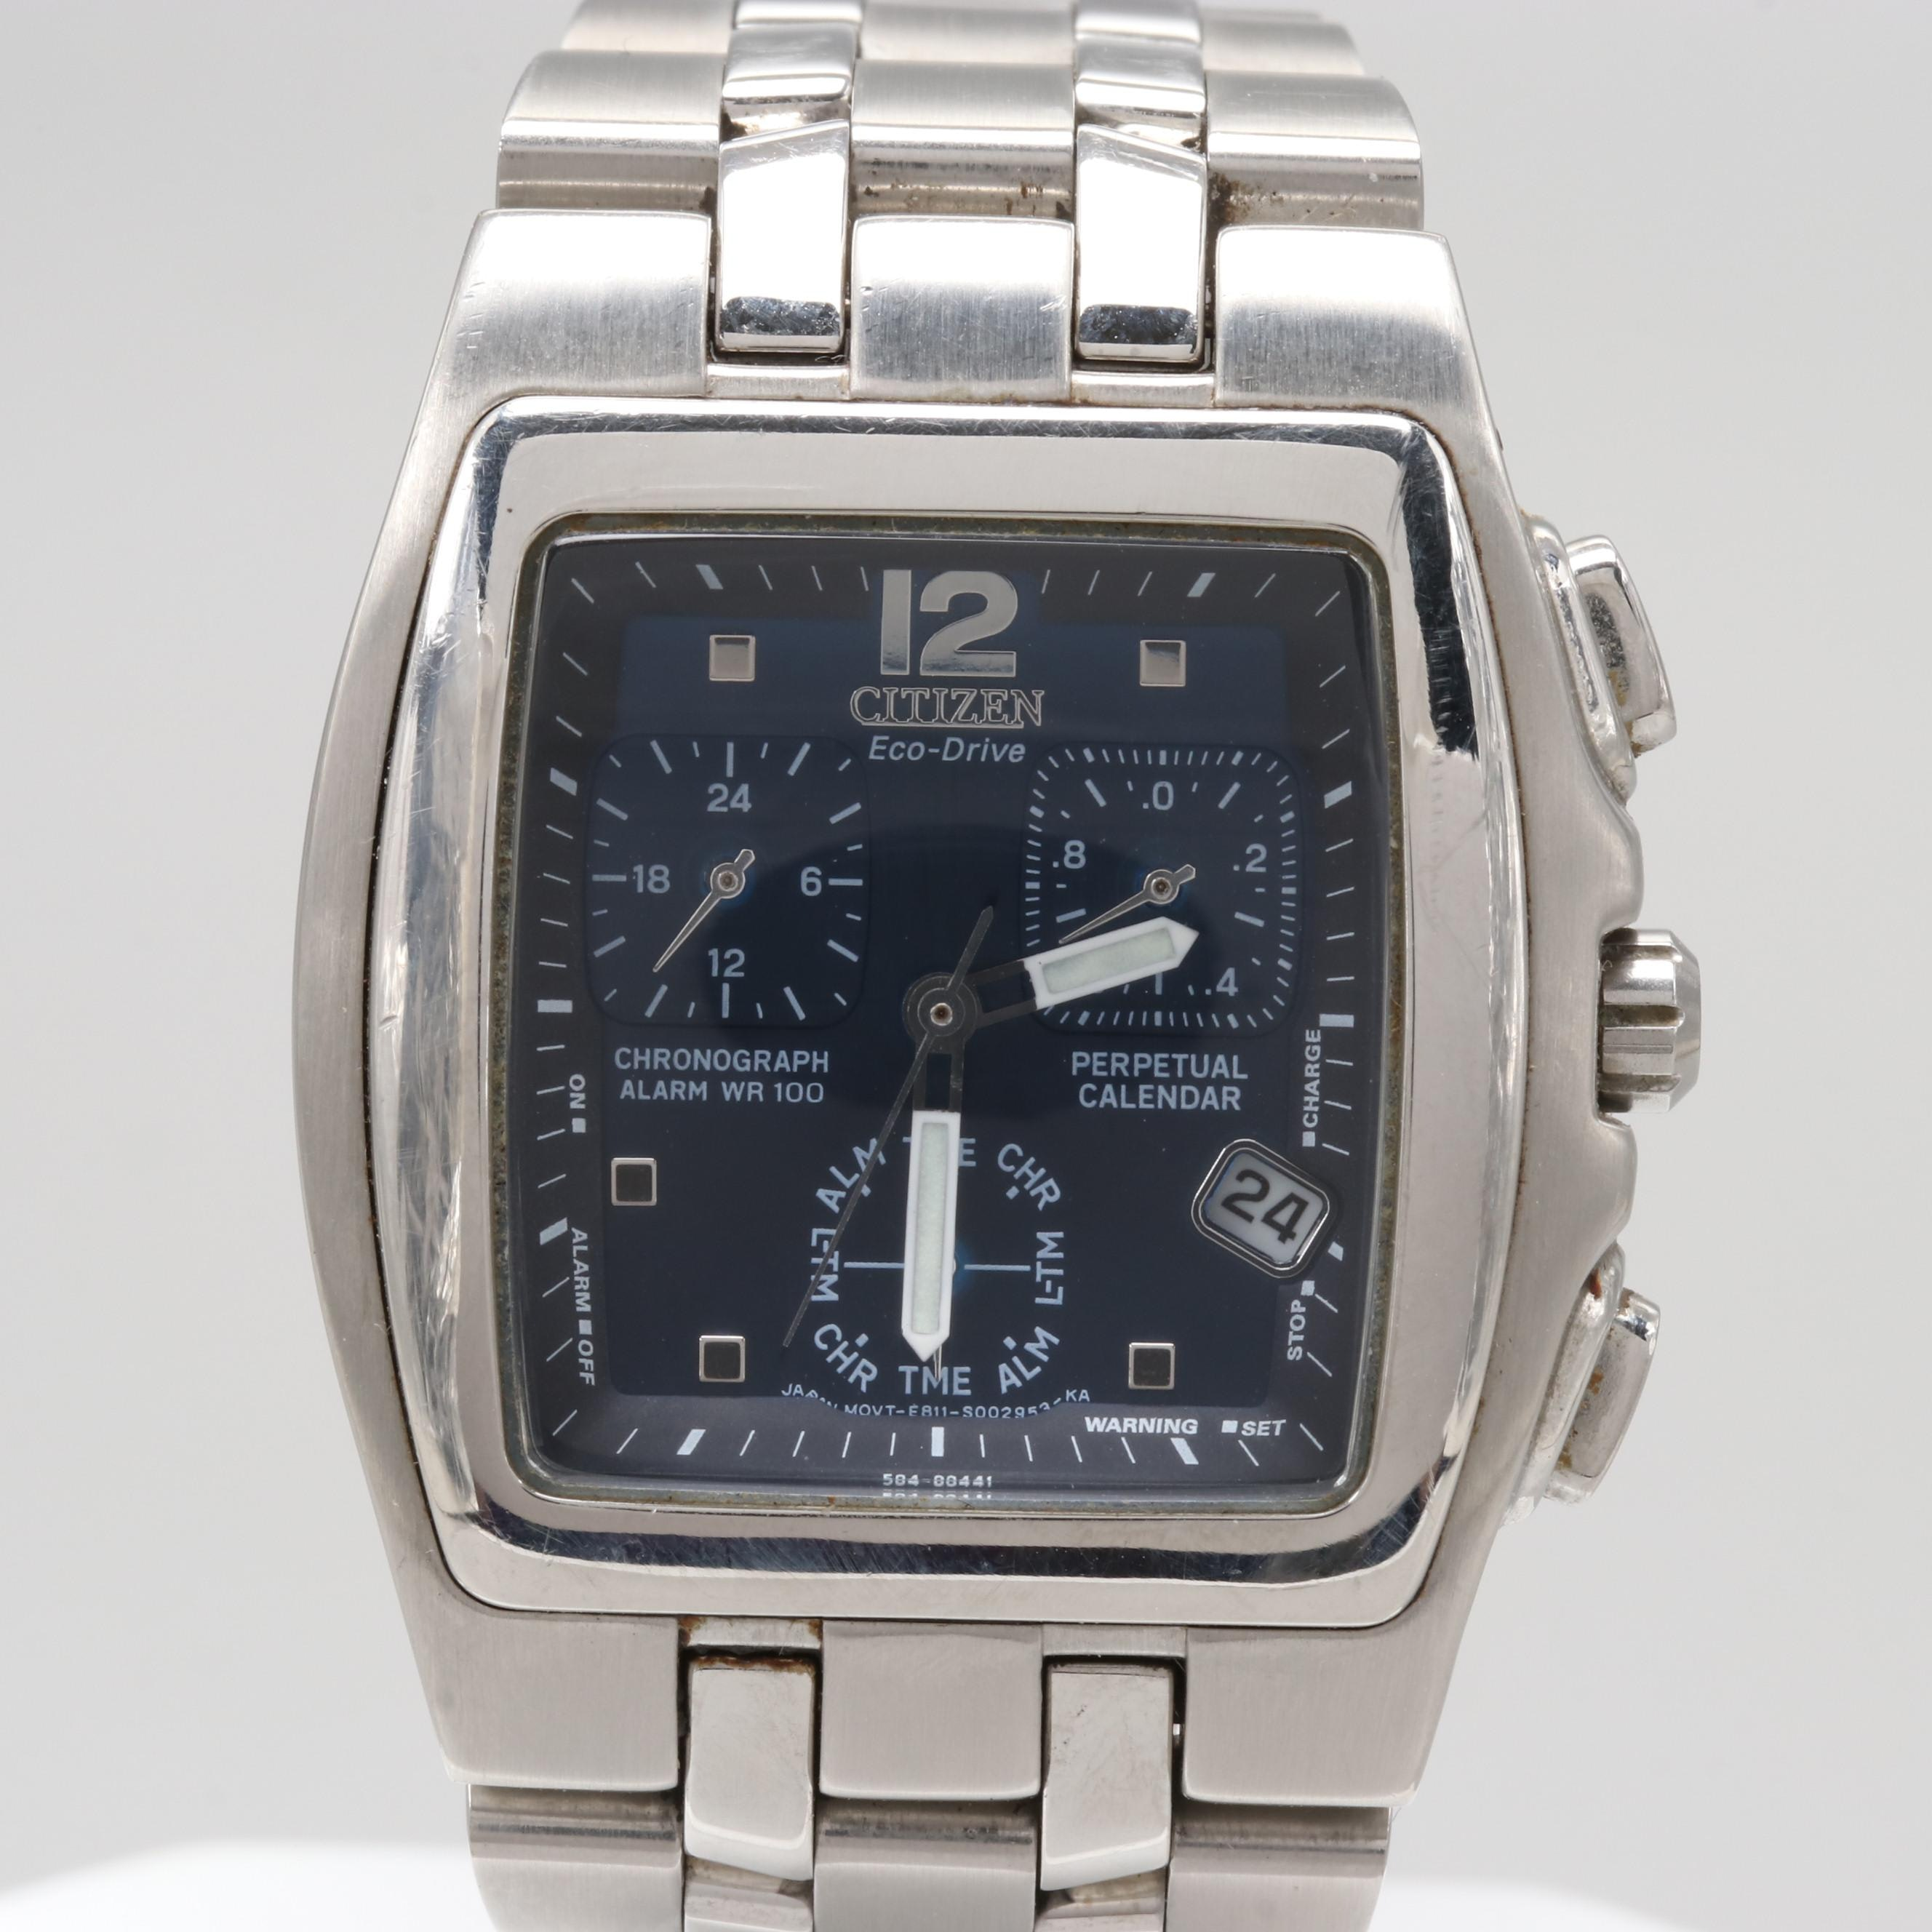 Citizen Eco-Drive Stainless Steel Wristwatch With Perpetual Calendar